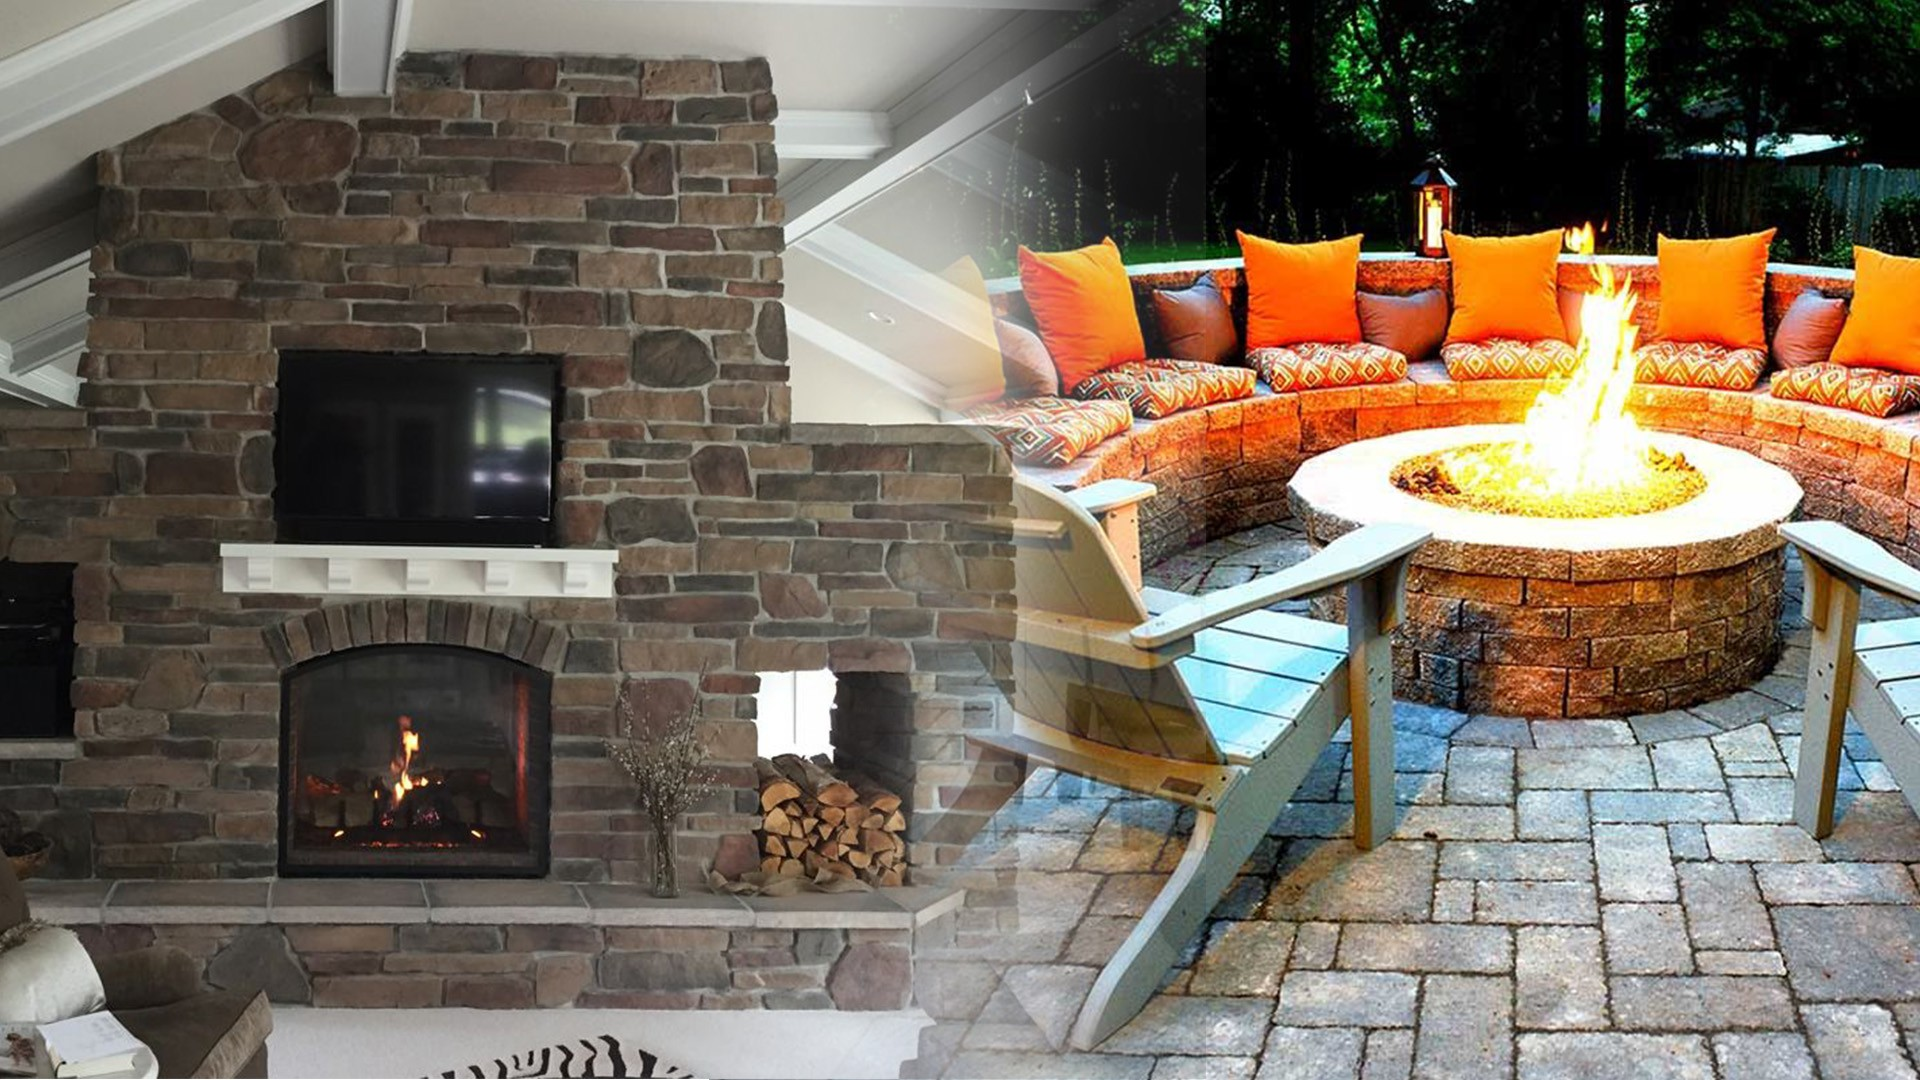 Outdoor Fireplaces & Fire Pits-Laredo TX Landscape Designs & Outdoor Living Areas-We offer Landscape Design, Outdoor Patios & Pergolas, Outdoor Living Spaces, Stonescapes, Residential & Commercial Landscaping, Irrigation Installation & Repairs, Drainage Systems, Landscape Lighting, Outdoor Living Spaces, Tree Service, Lawn Service, and more.